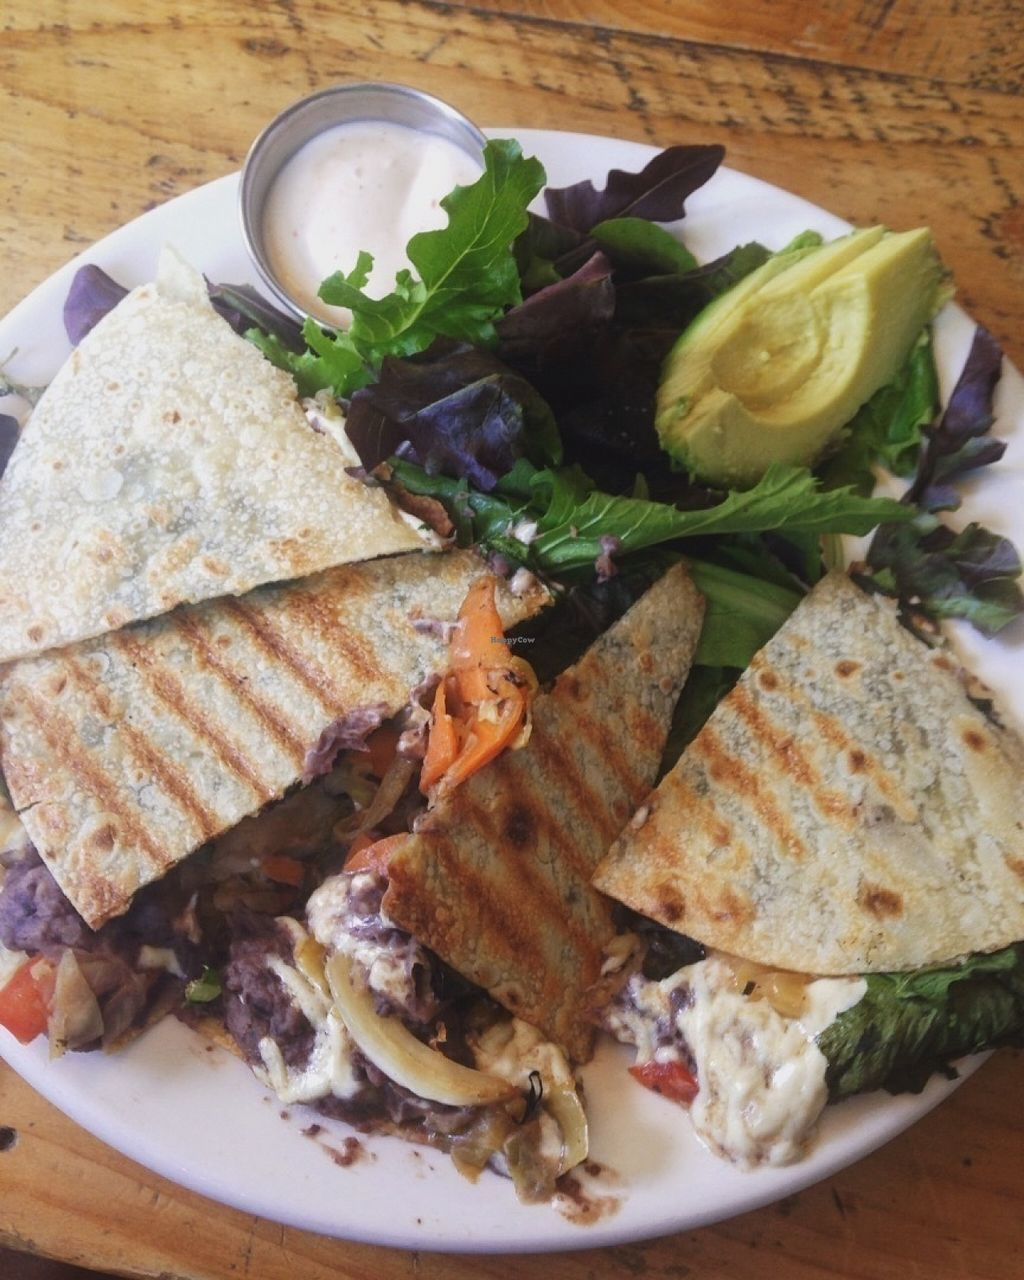 Photo of Superfresh Organic Cafe  by Stormethh <br/>The kimchi quesadilla - Delicious!  <br/> July 24, 2016  - <a href='/contact/abuse/image/36615/161927'>Report</a>